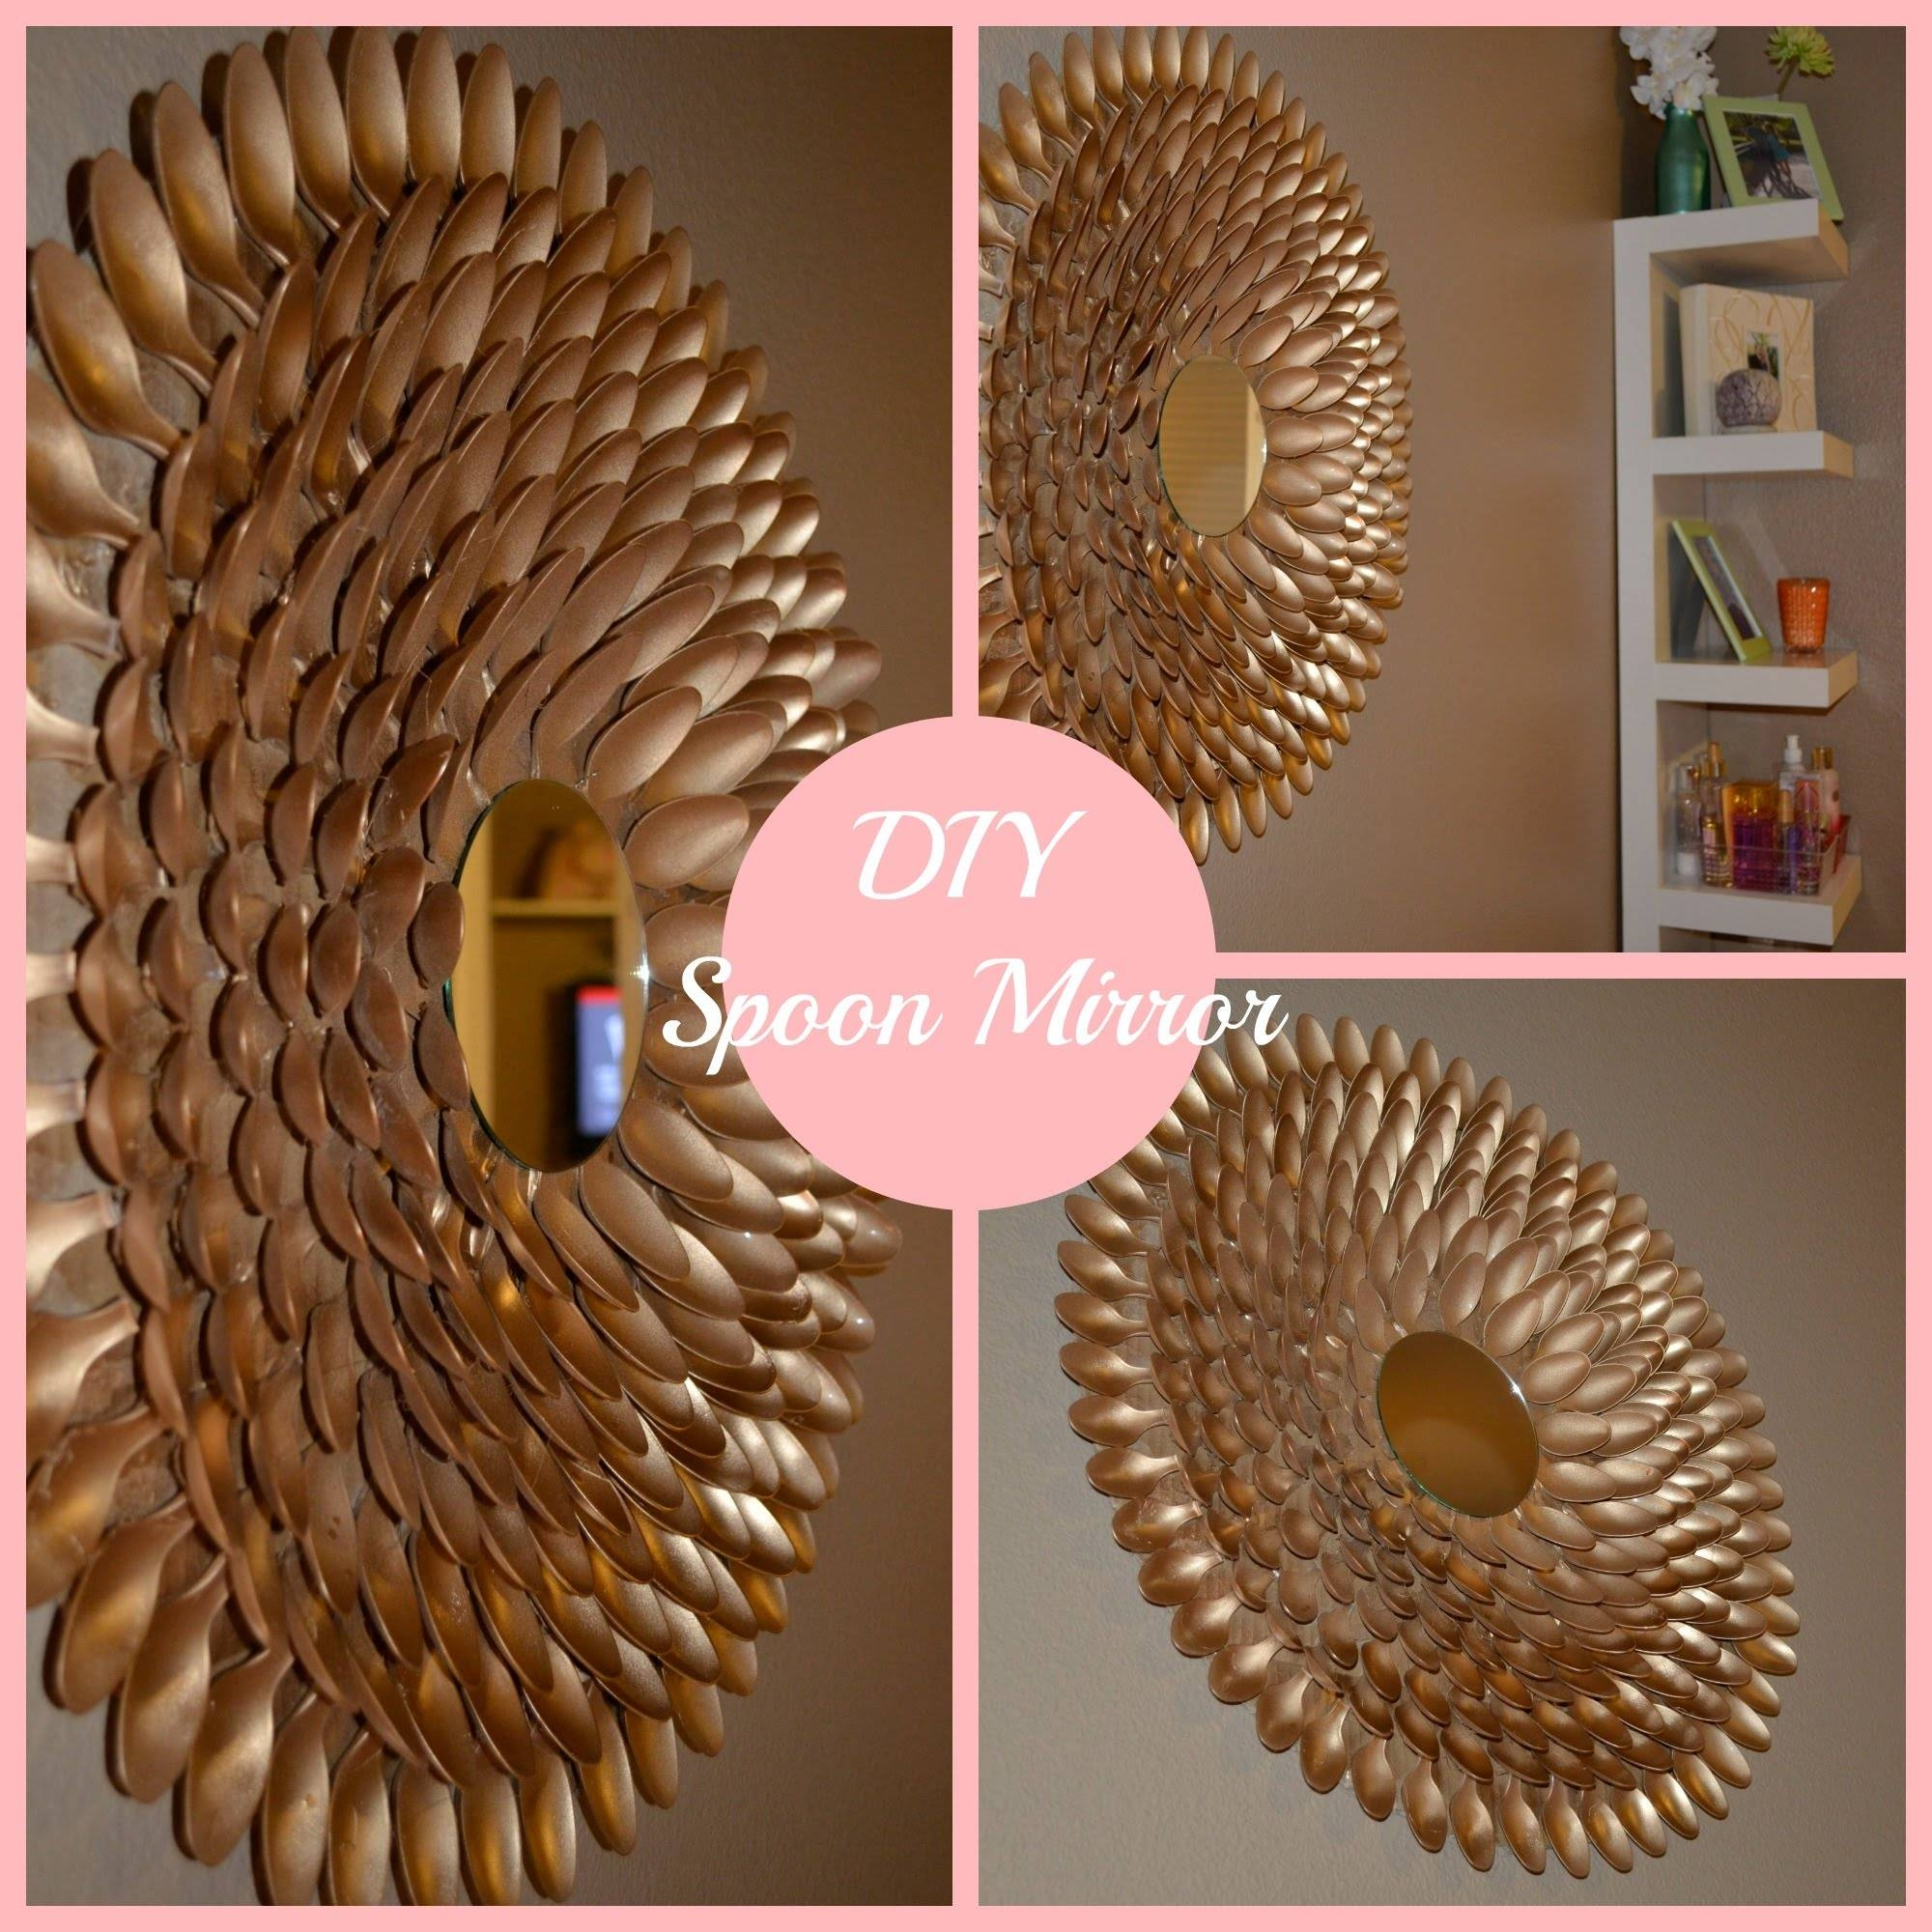 Diy Spoon Mirror Wall Decor – Youtube Pertaining To Most Current Diy Mirror Wall Art (View 5 of 20)